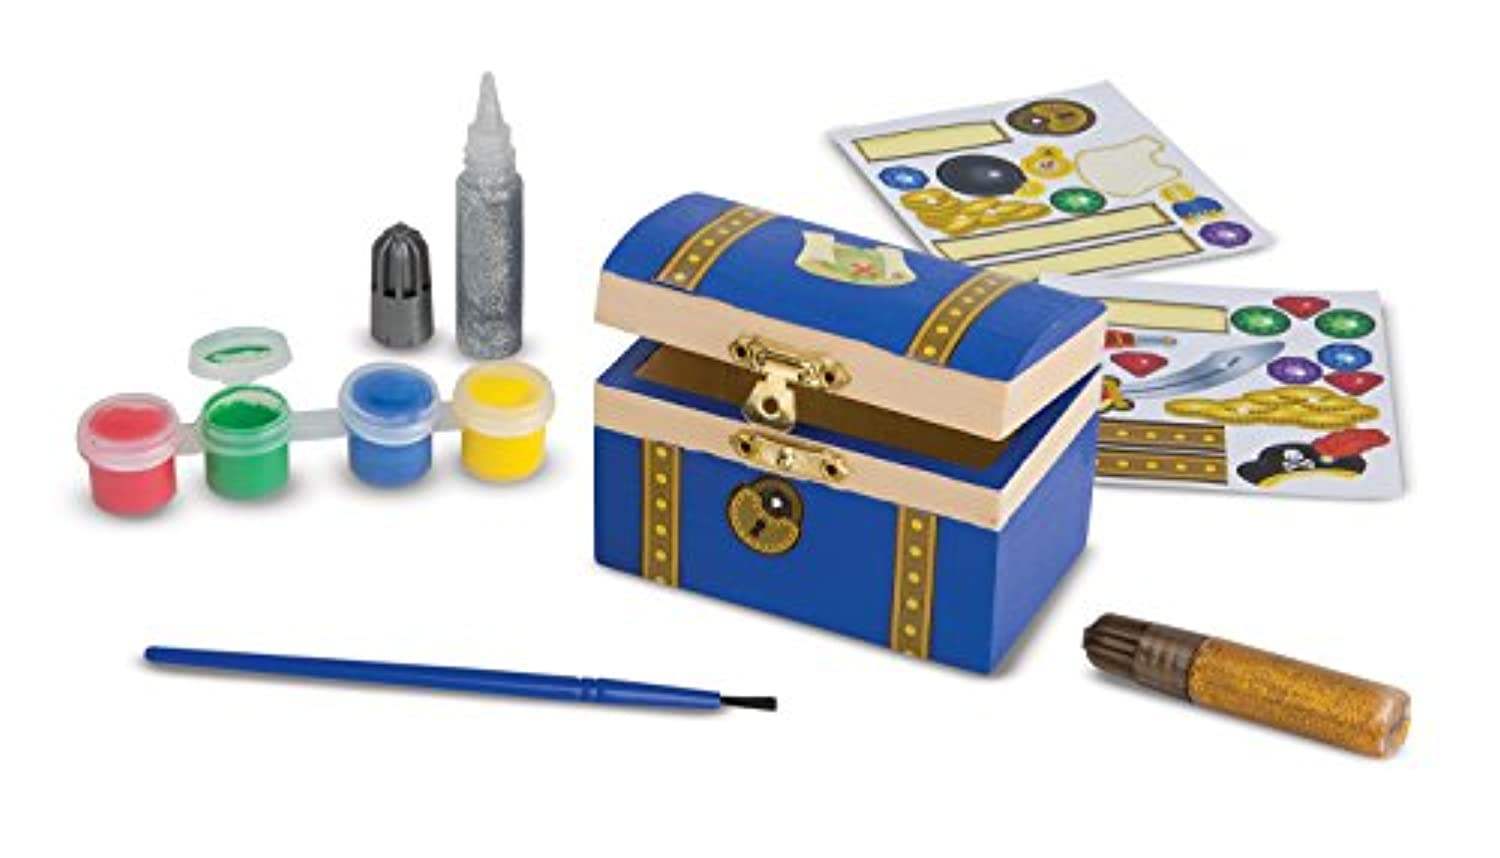 Pirate Chest: Arts & Crafts - Kits